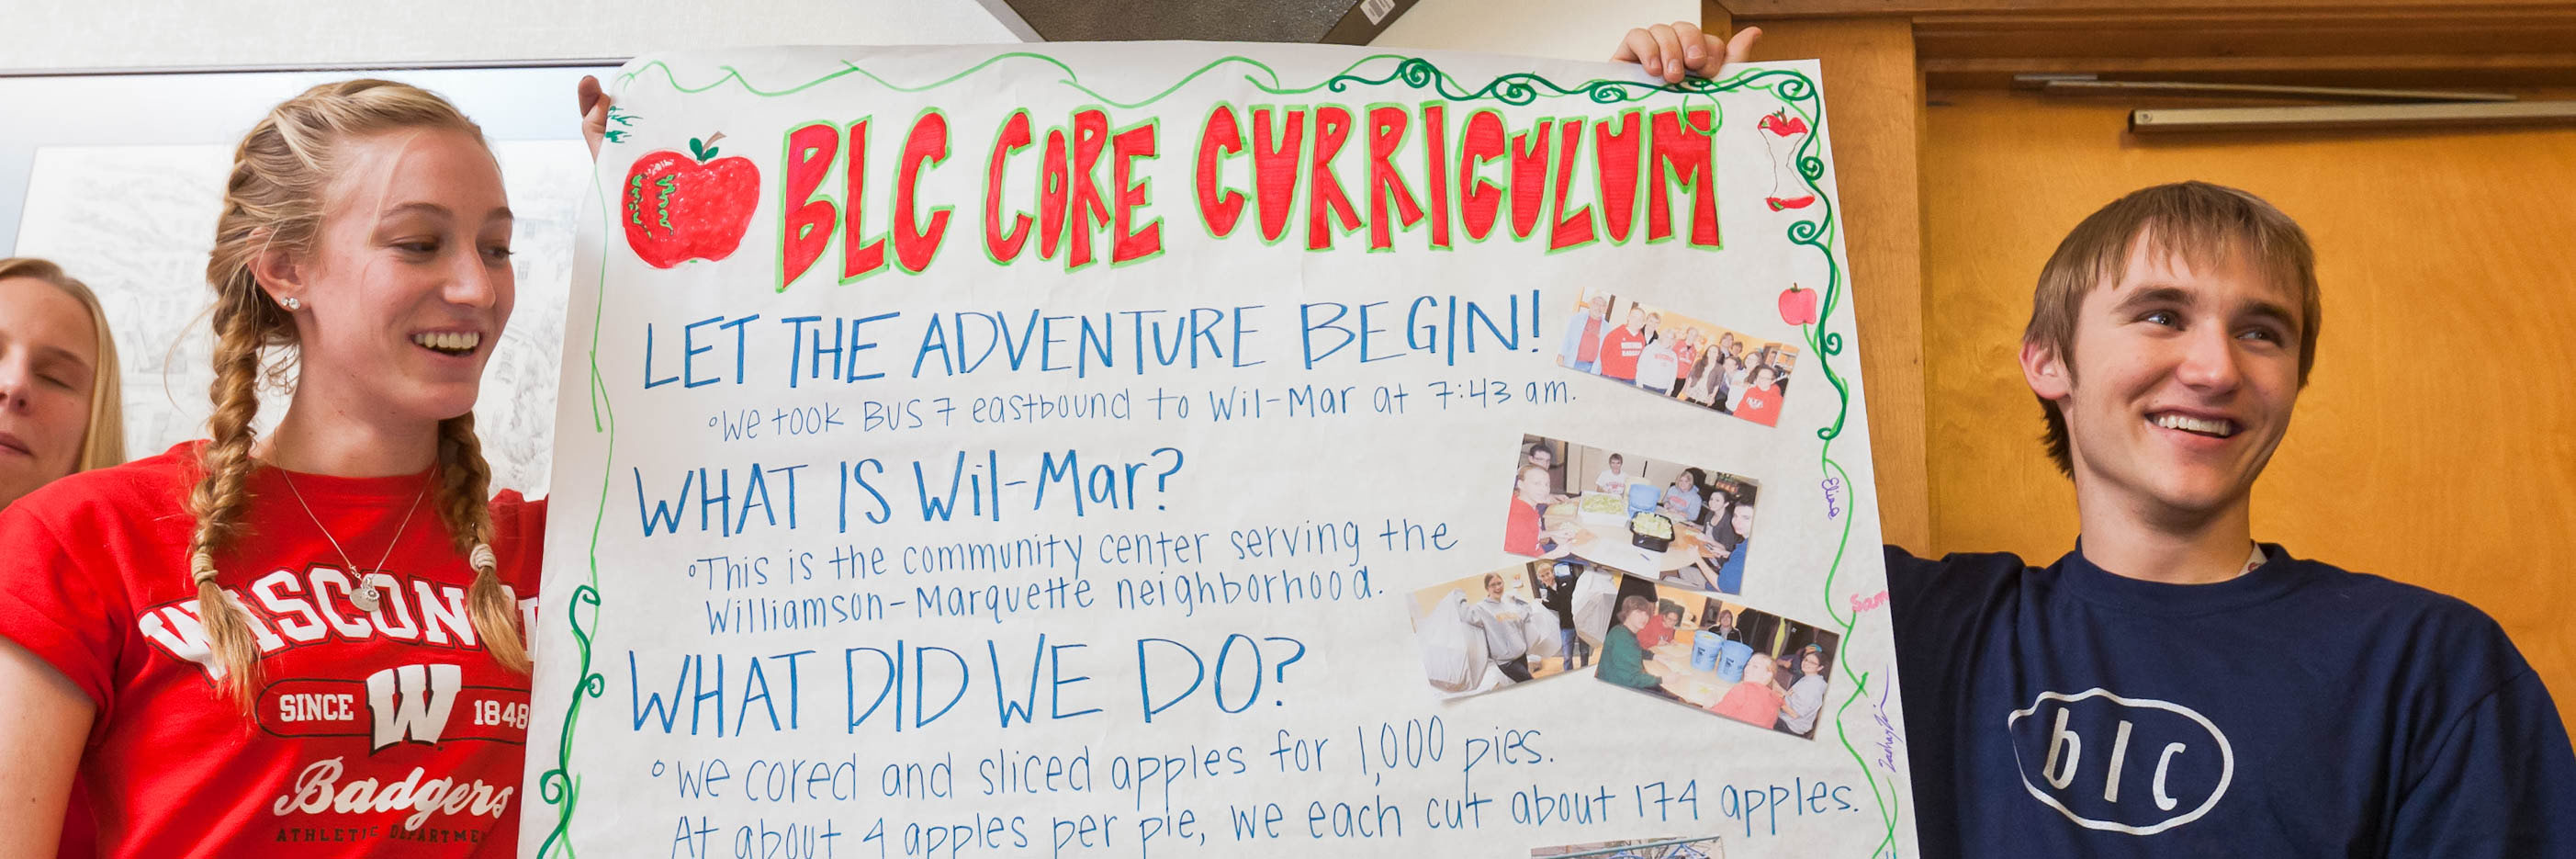 BLC residents present their core curriculum project at Roundtable